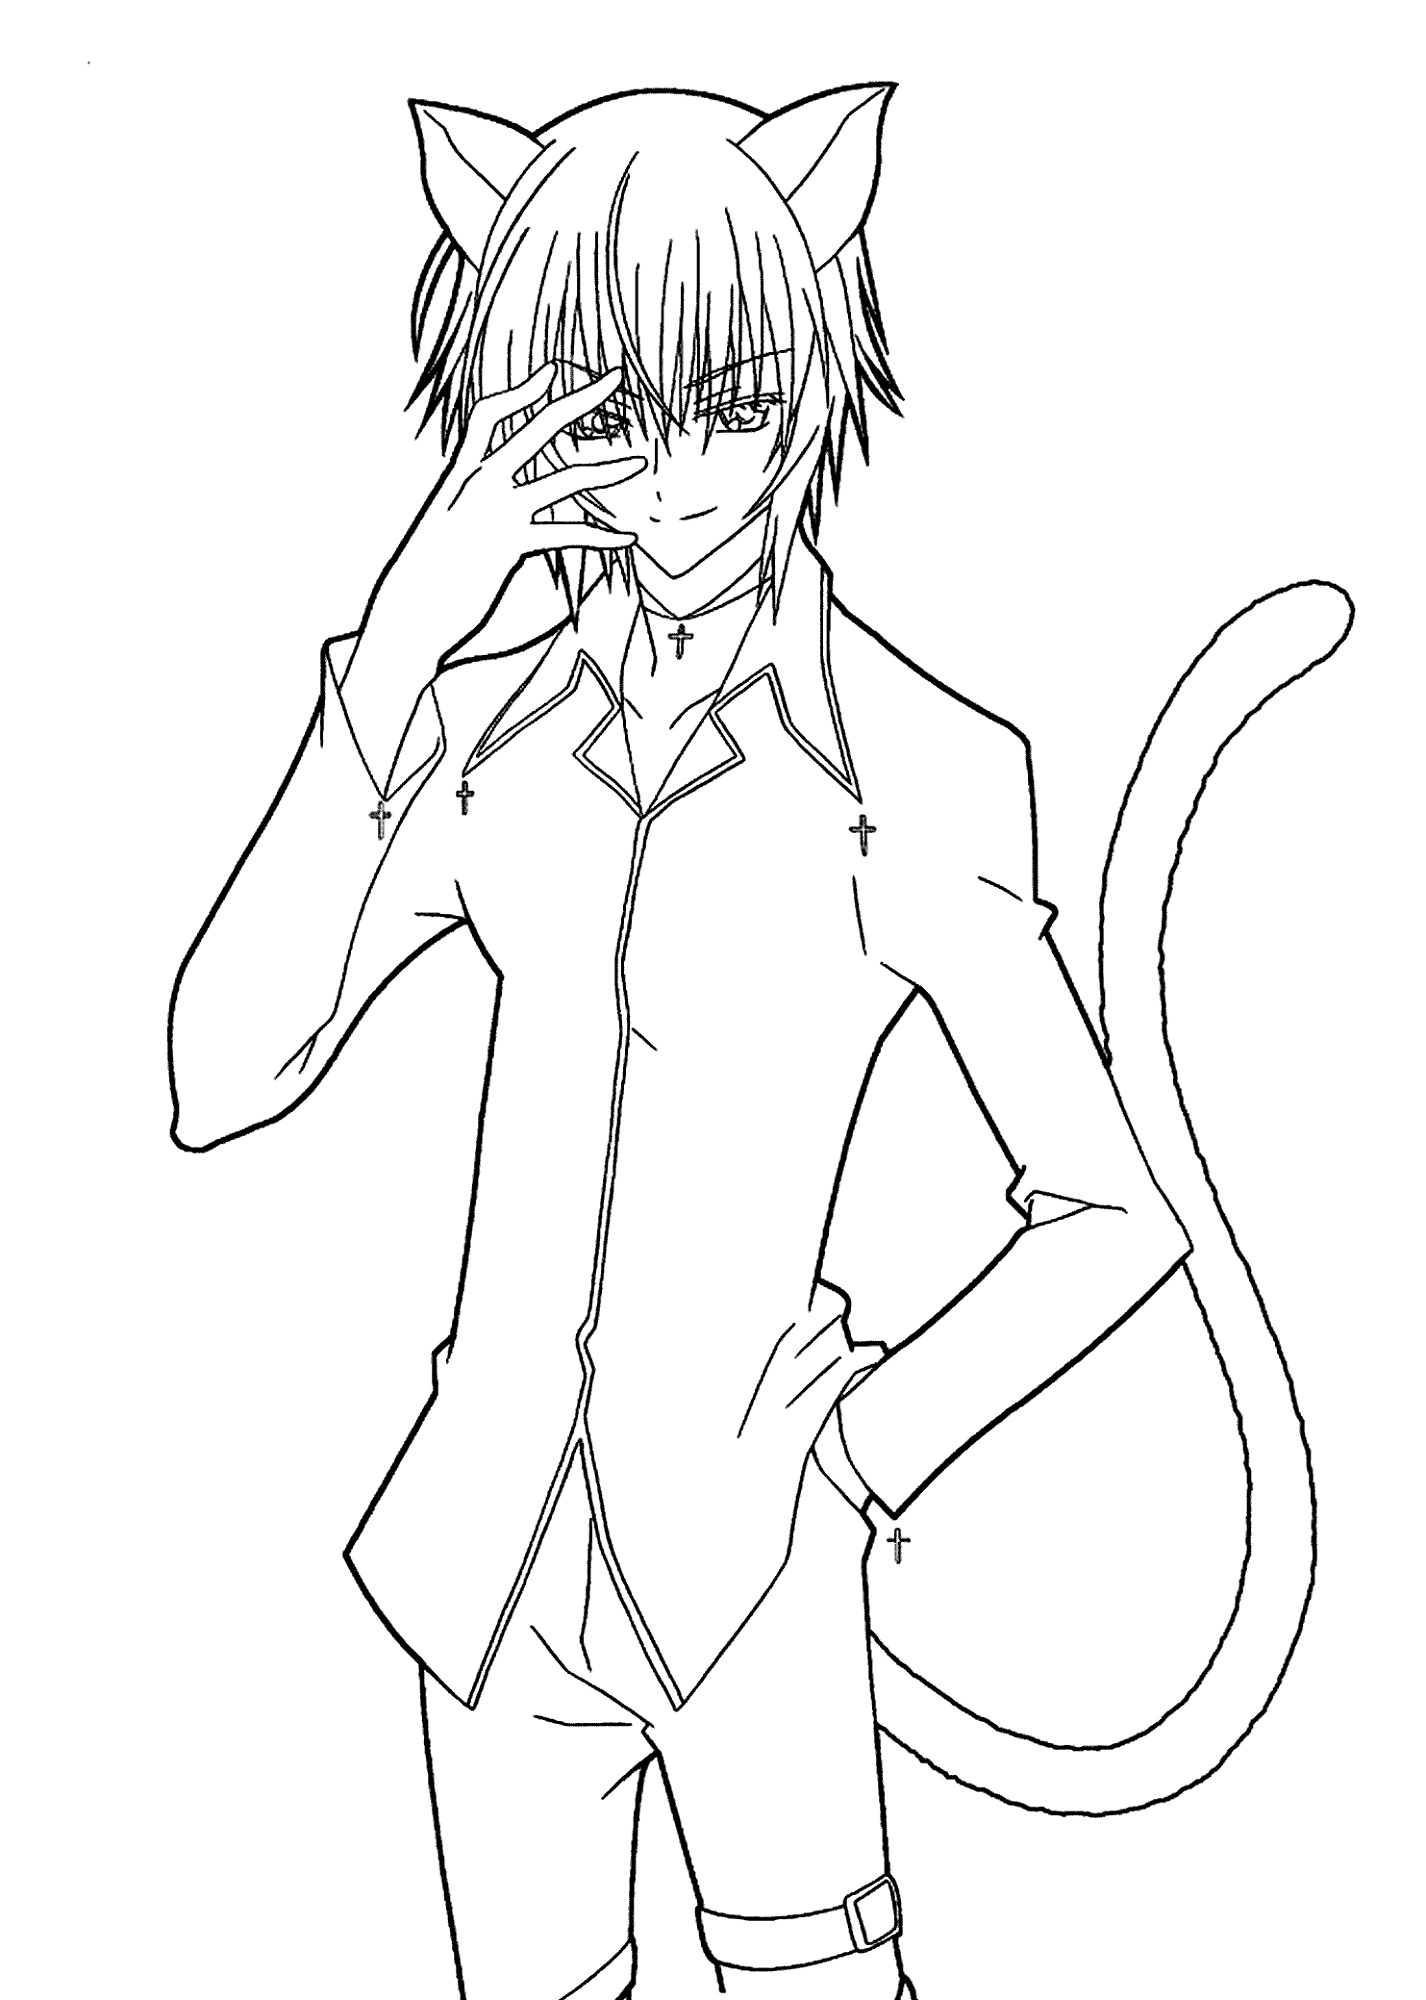 Coloring Pages for Boys Anime